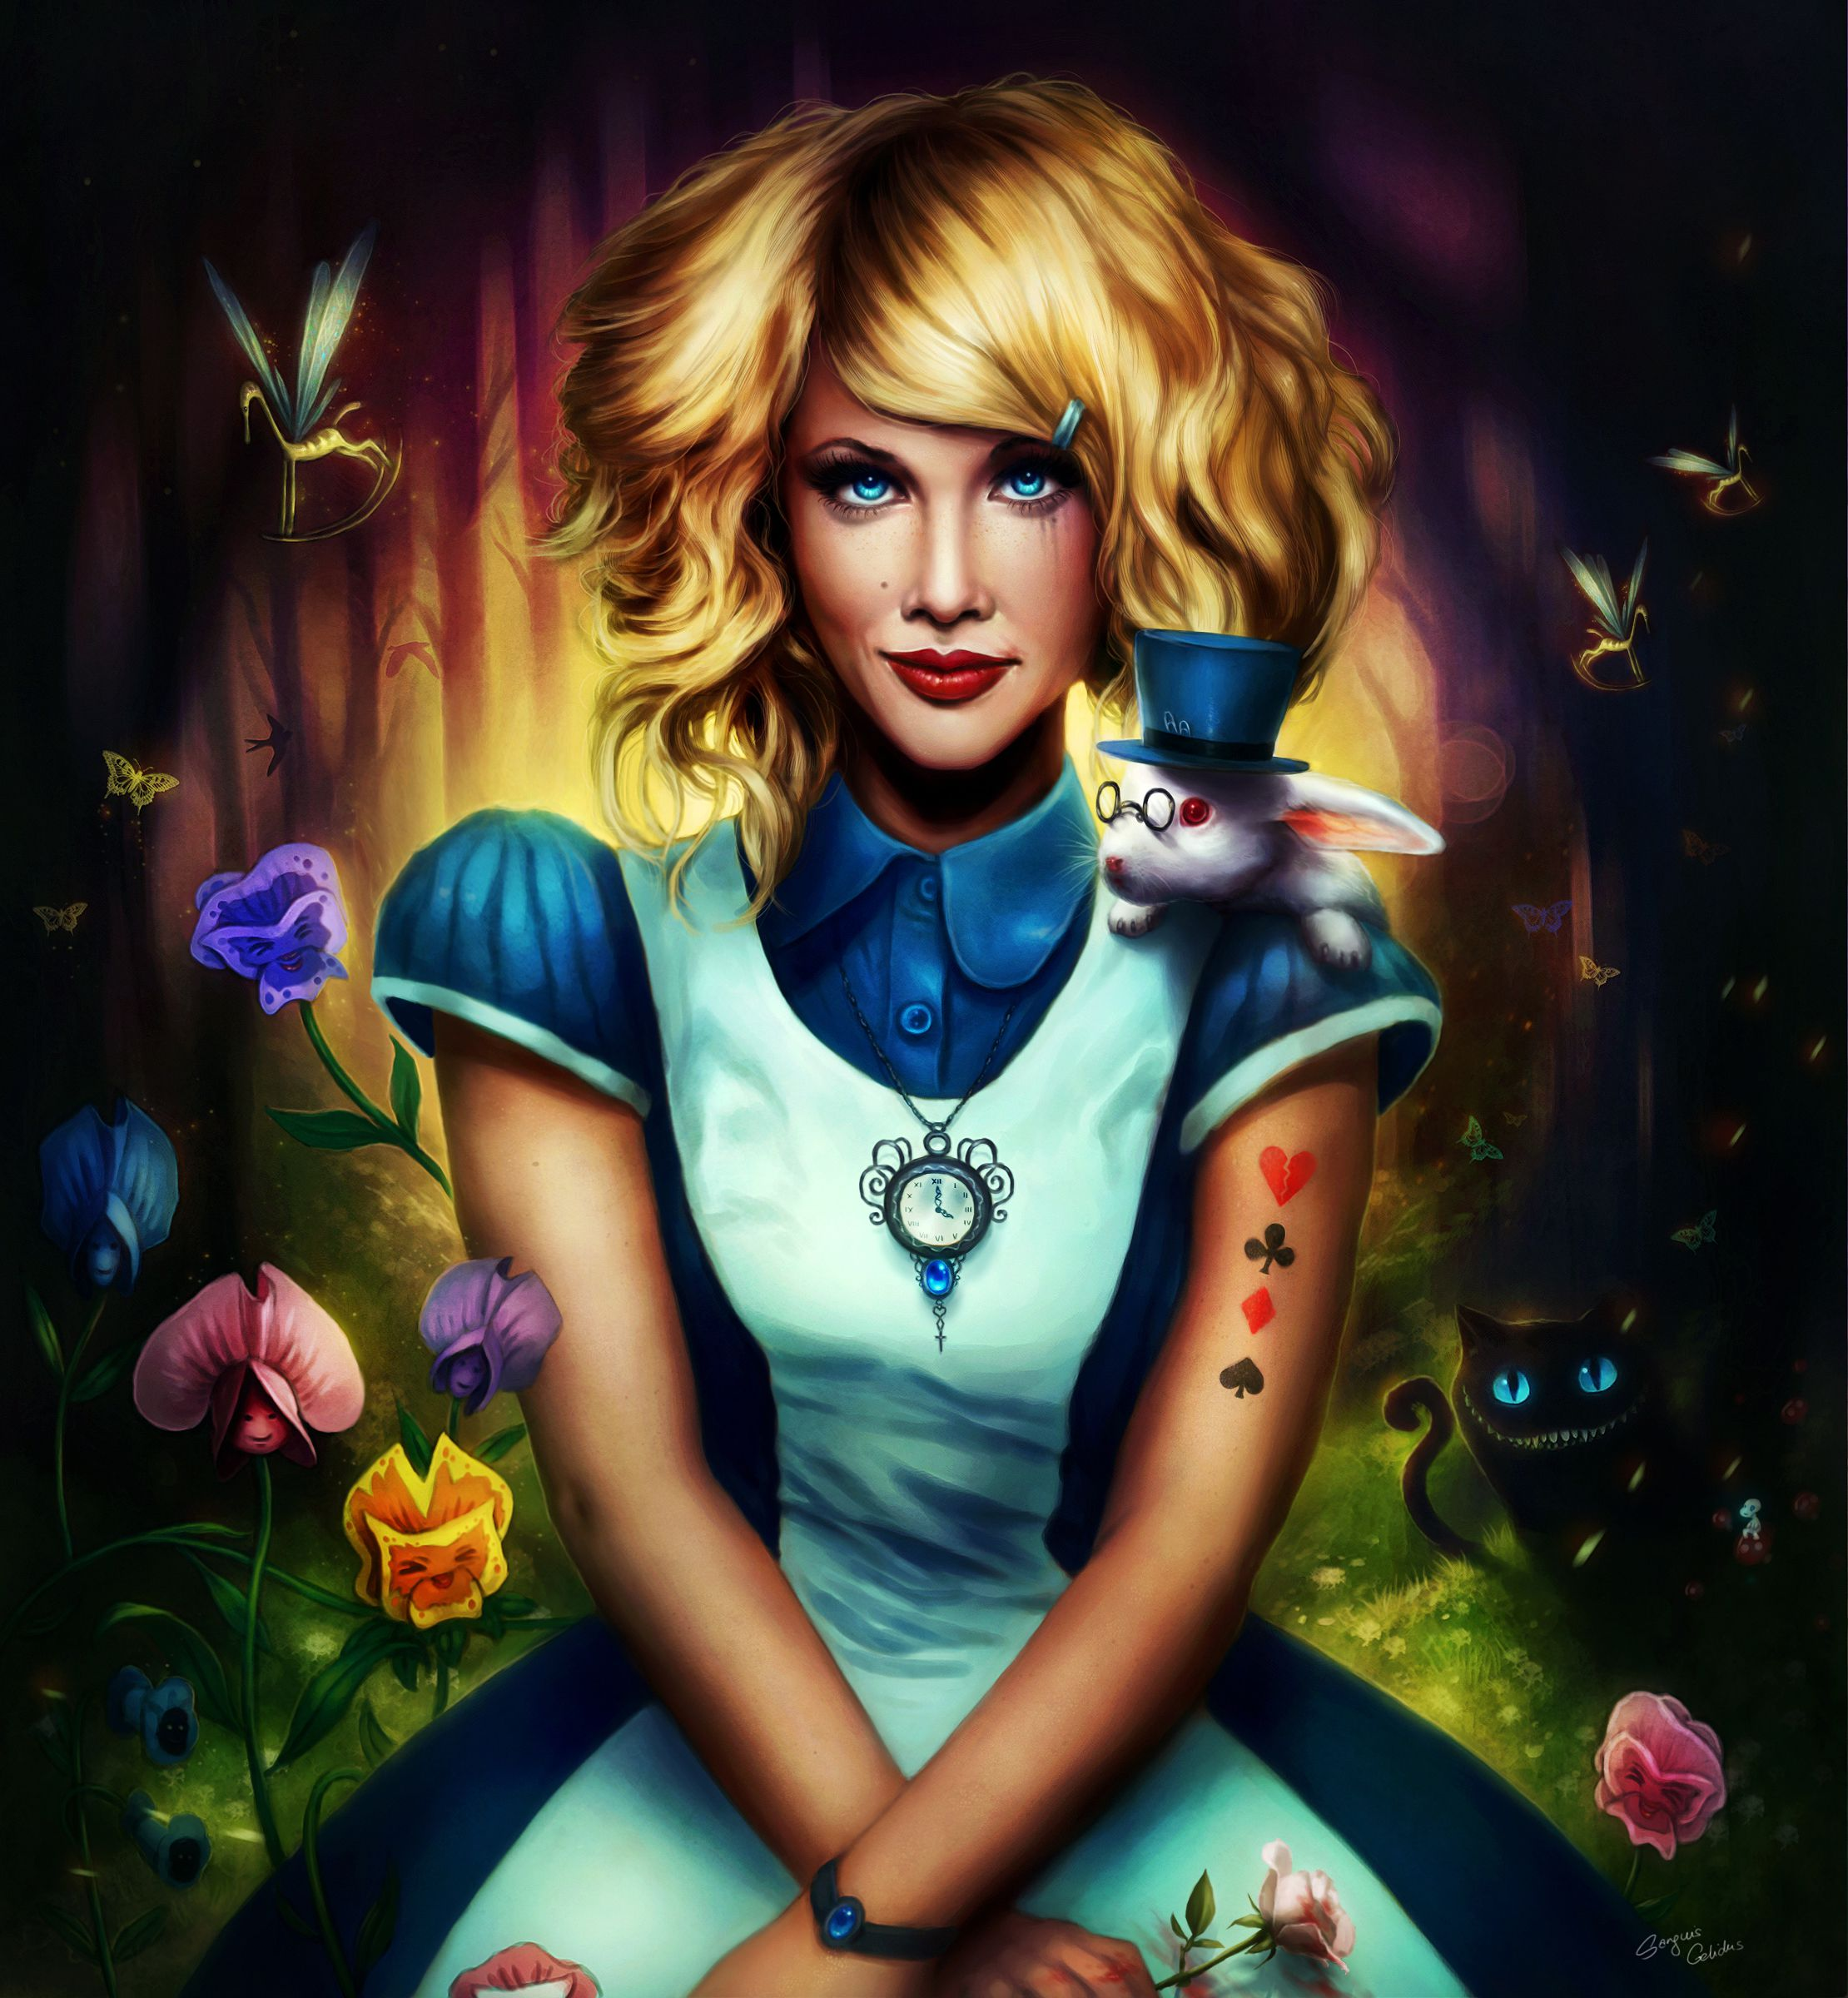 the character of alice in lena